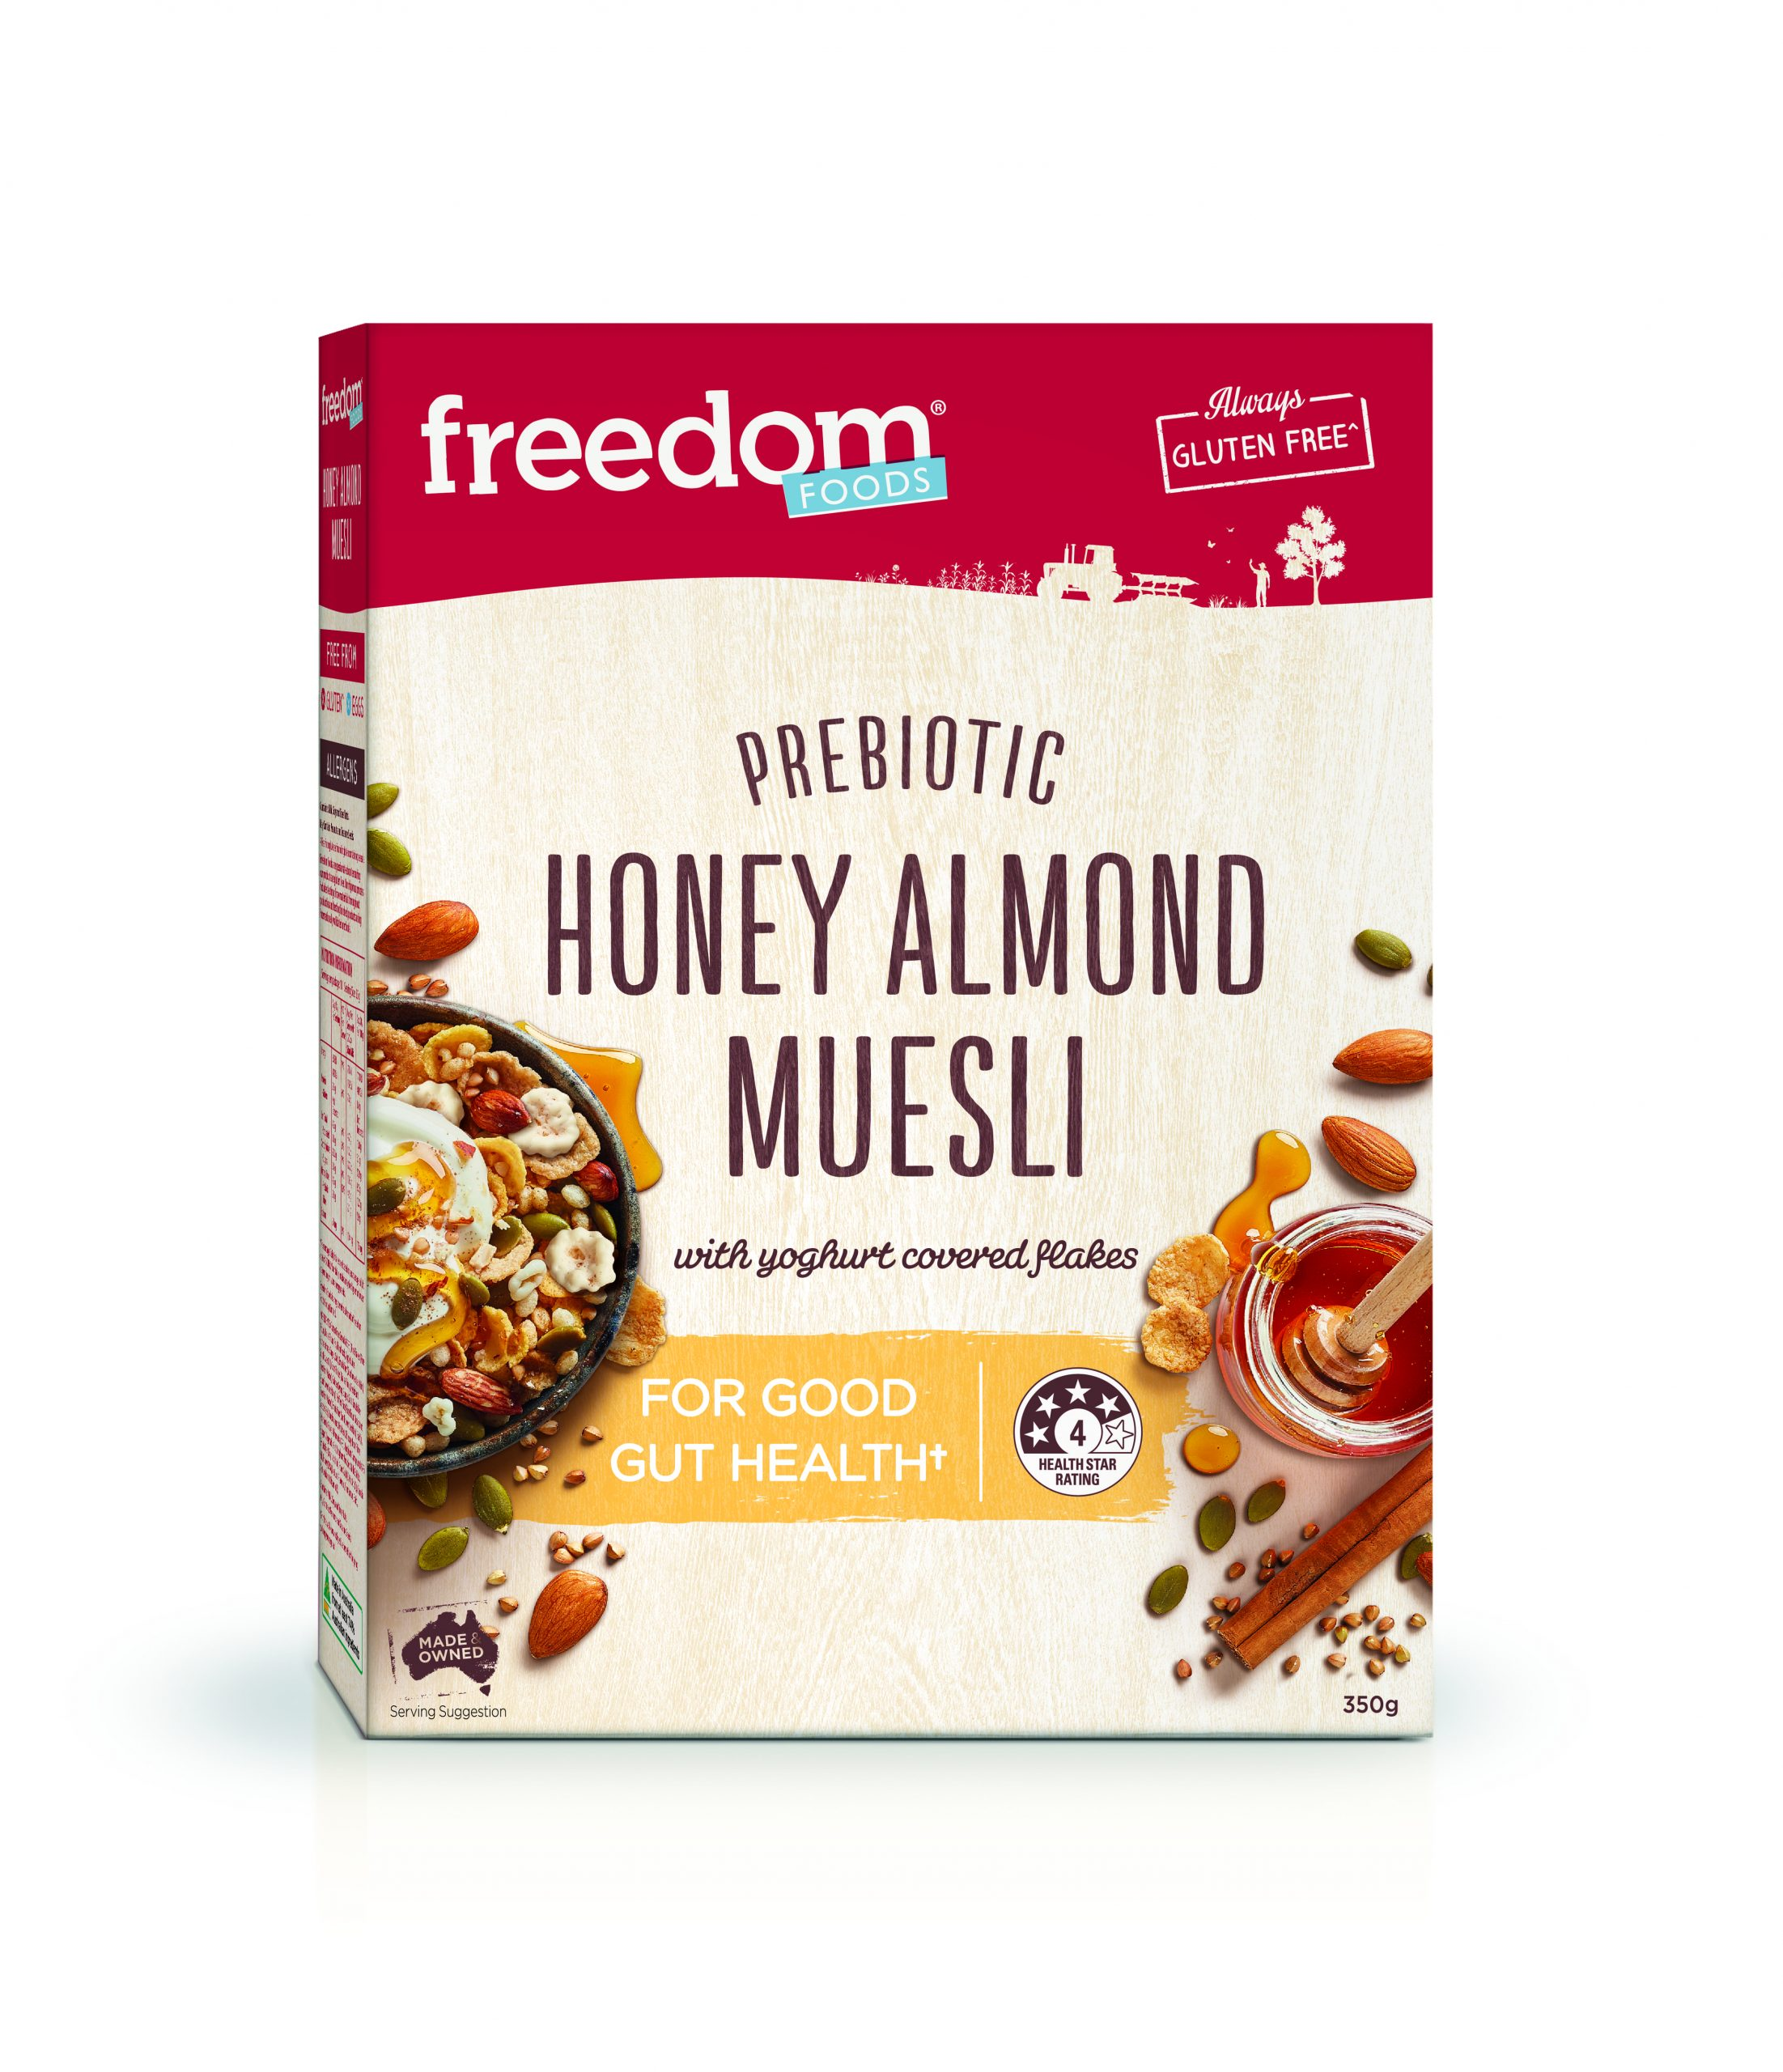 HONEY ALMOND MUESLI